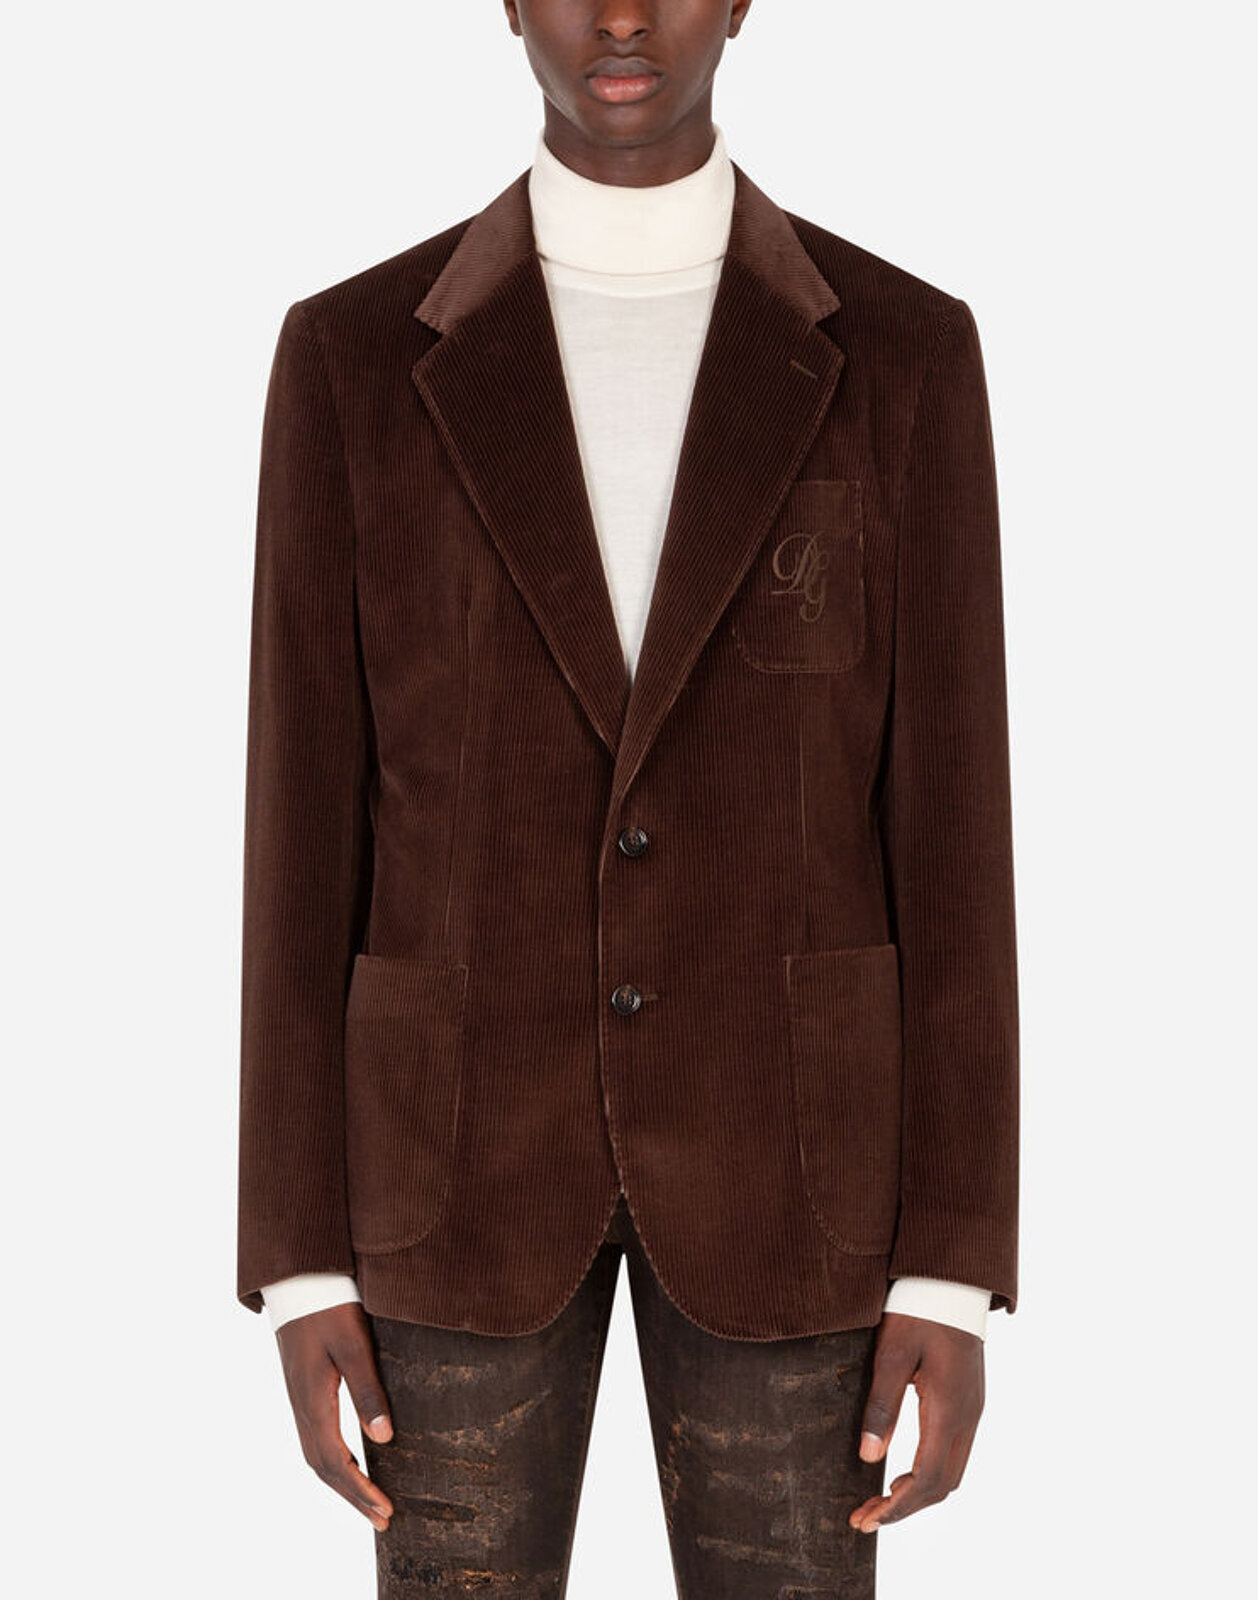 Corduroy Taormina Jacket With Embroidery Dg - Dolce & Gabbana